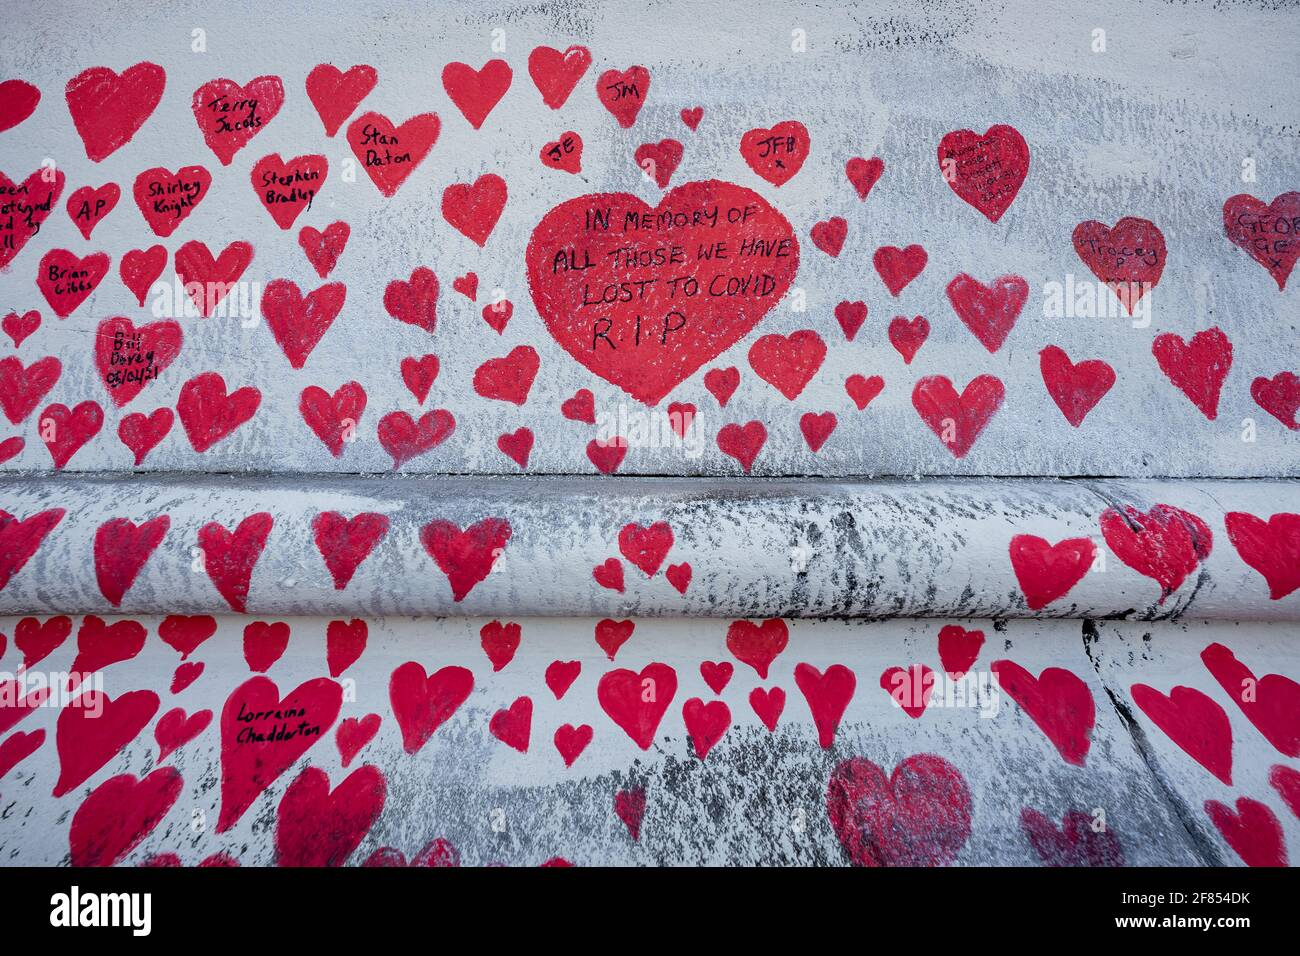 Coronavirus: National Covid Memorial Wall of Hearts, Westminster, Londres, Royaume-Uni. Banque D'Images